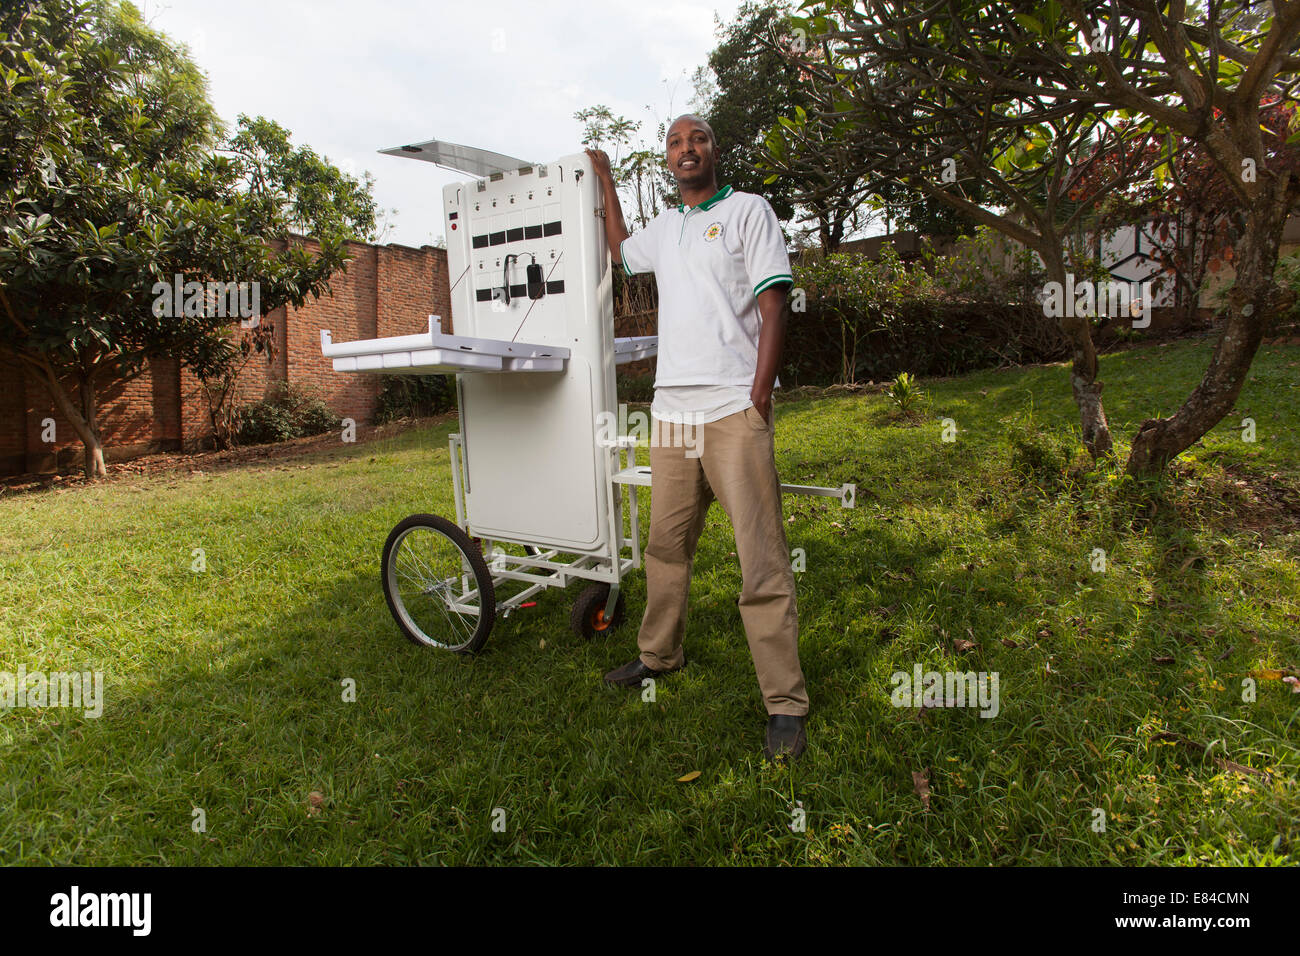 Solar energy entrepreneur posing with a portable booth designed to sell electricity in off-grid communities, Kigali, - Stock Image